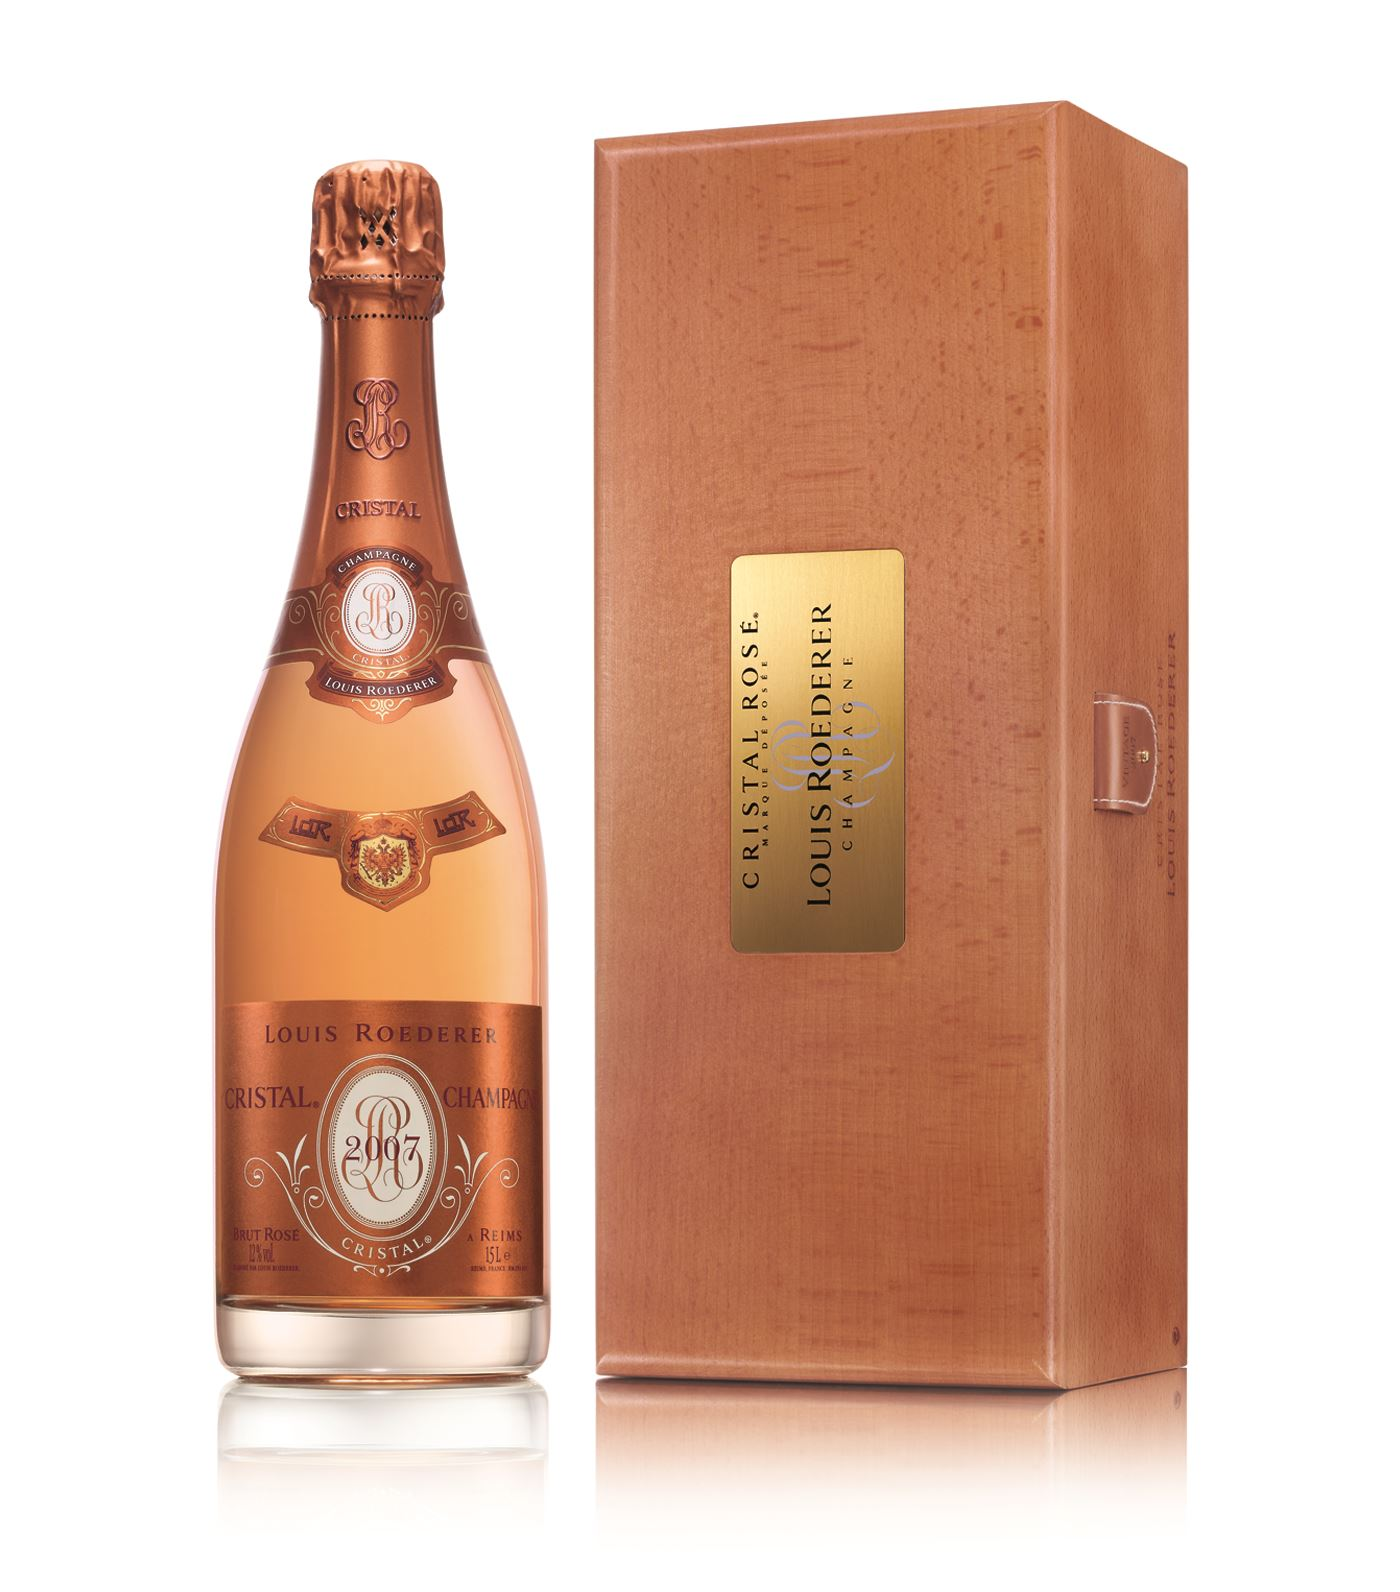 buy a magnum of louis roederer cristal rose 2002 champagne champagne king. Black Bedroom Furniture Sets. Home Design Ideas